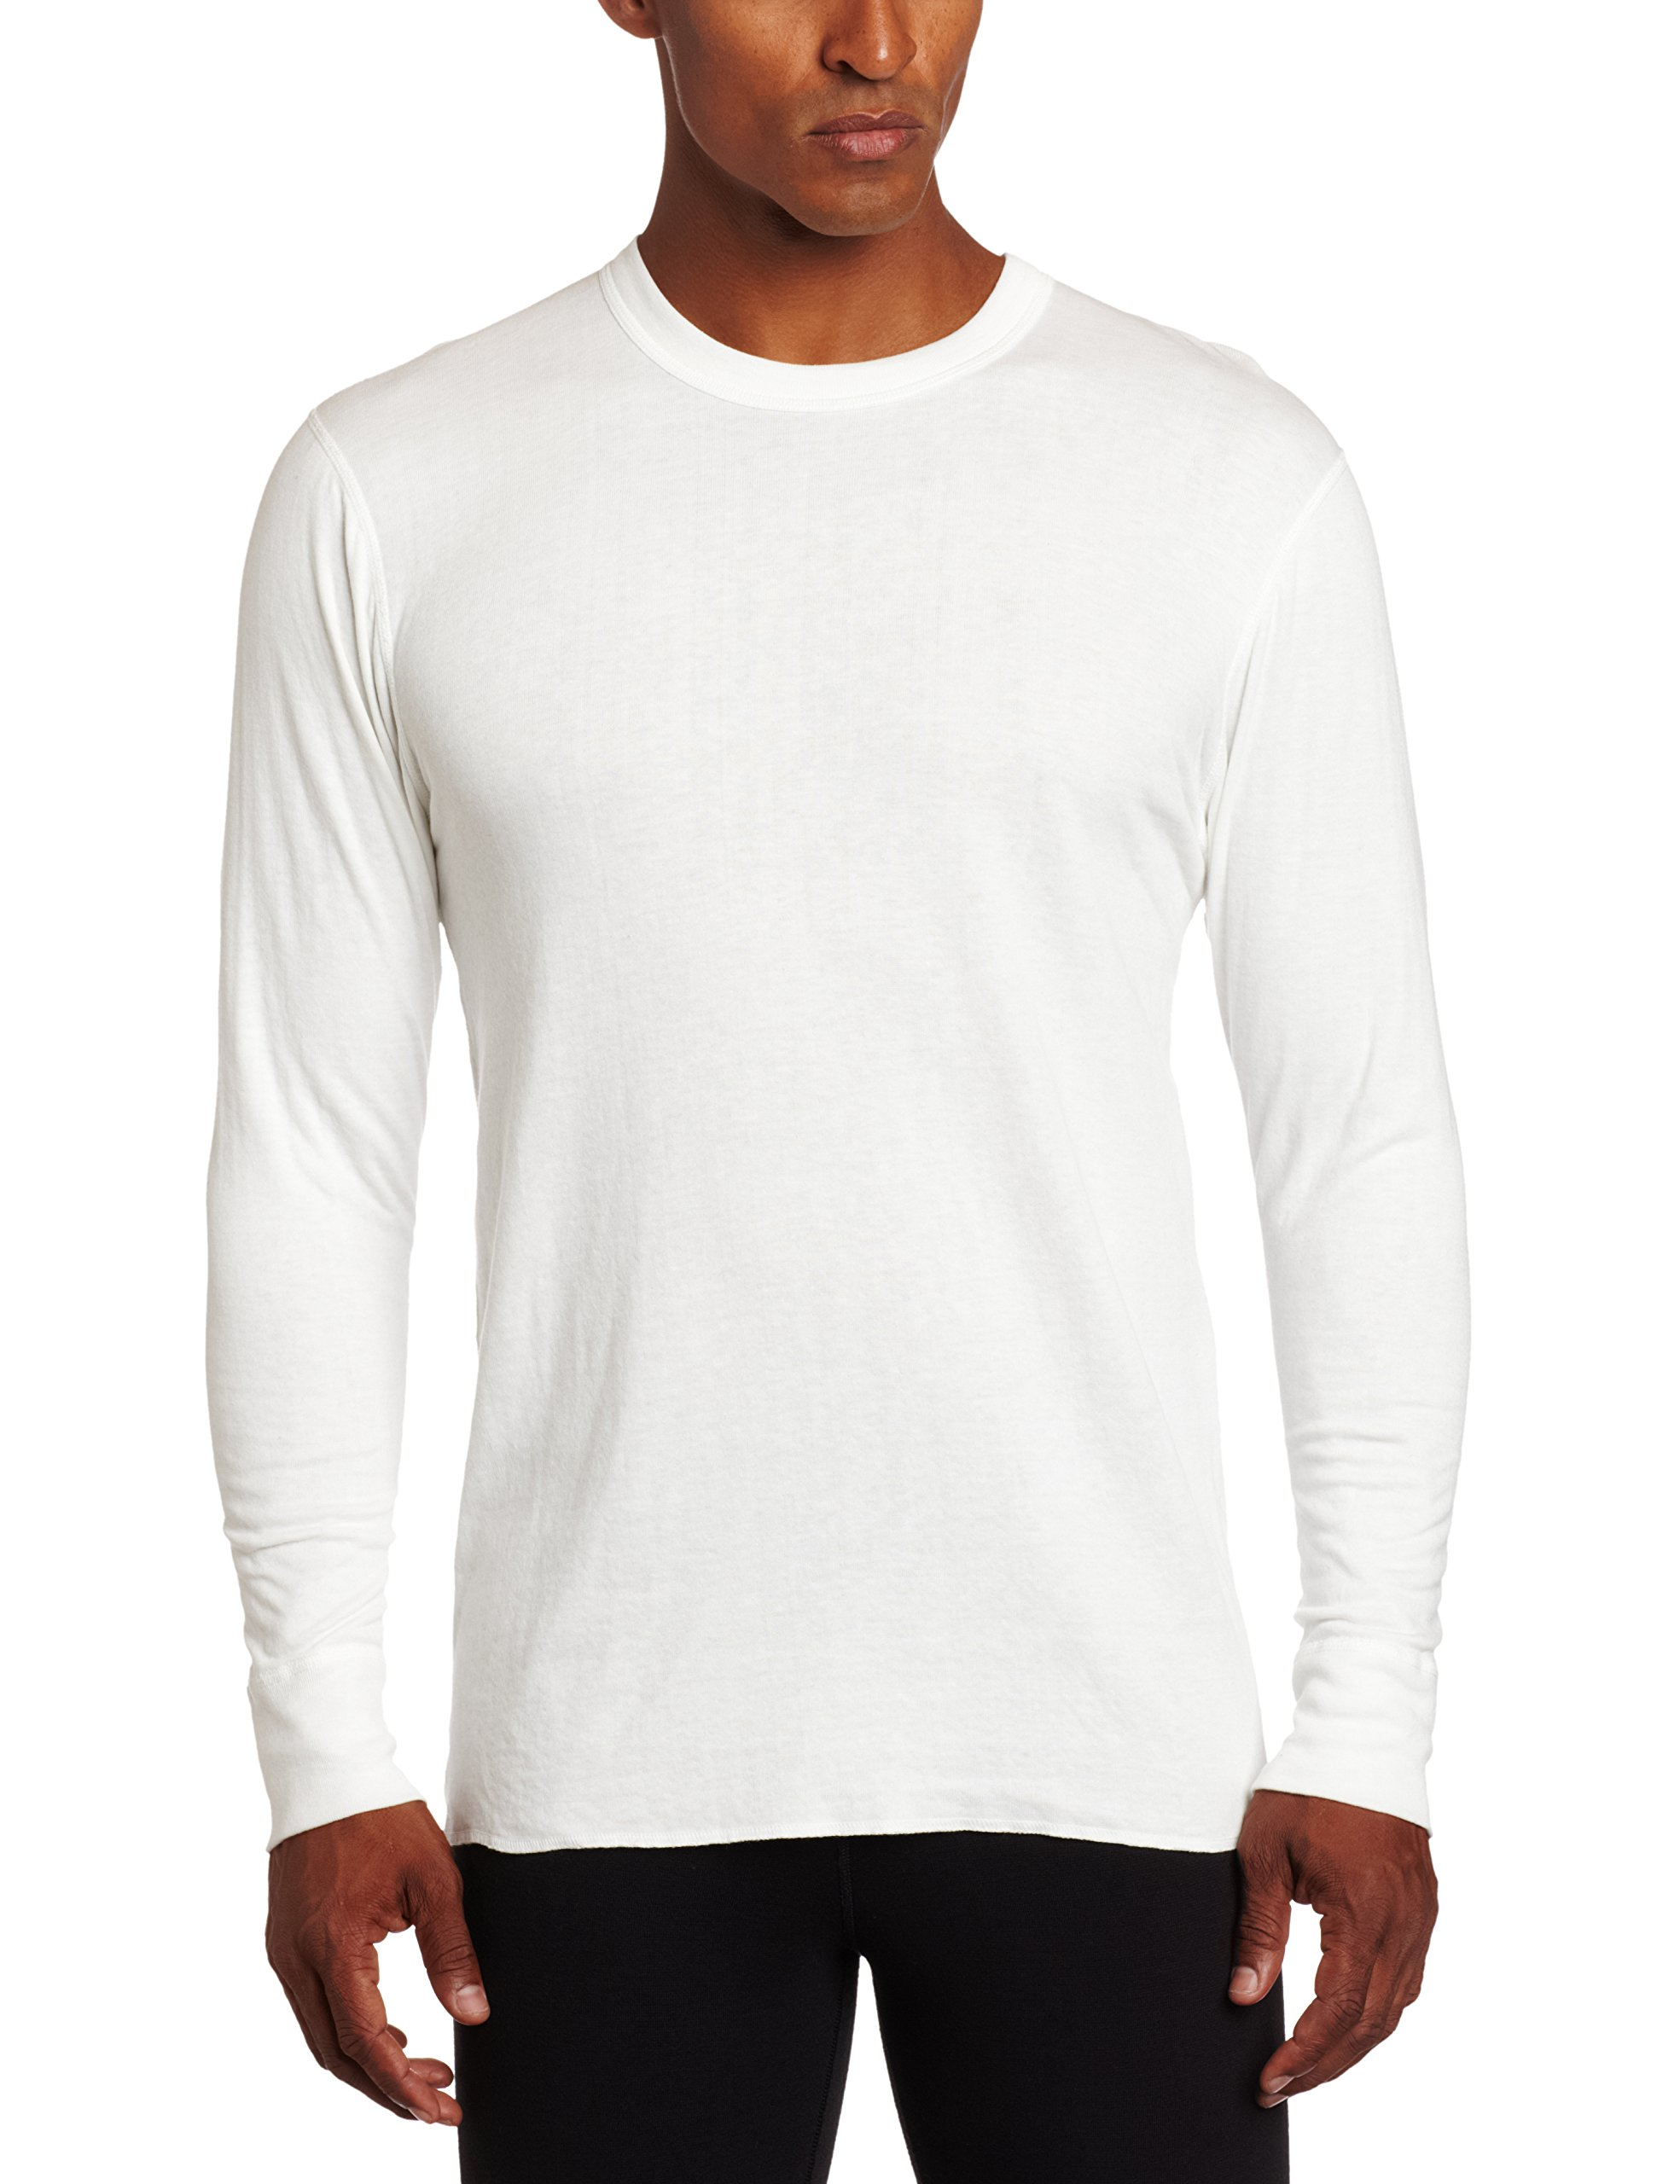 Duofold Men's Mid Weight Wicking Crew Neck Top, Winter White, Large